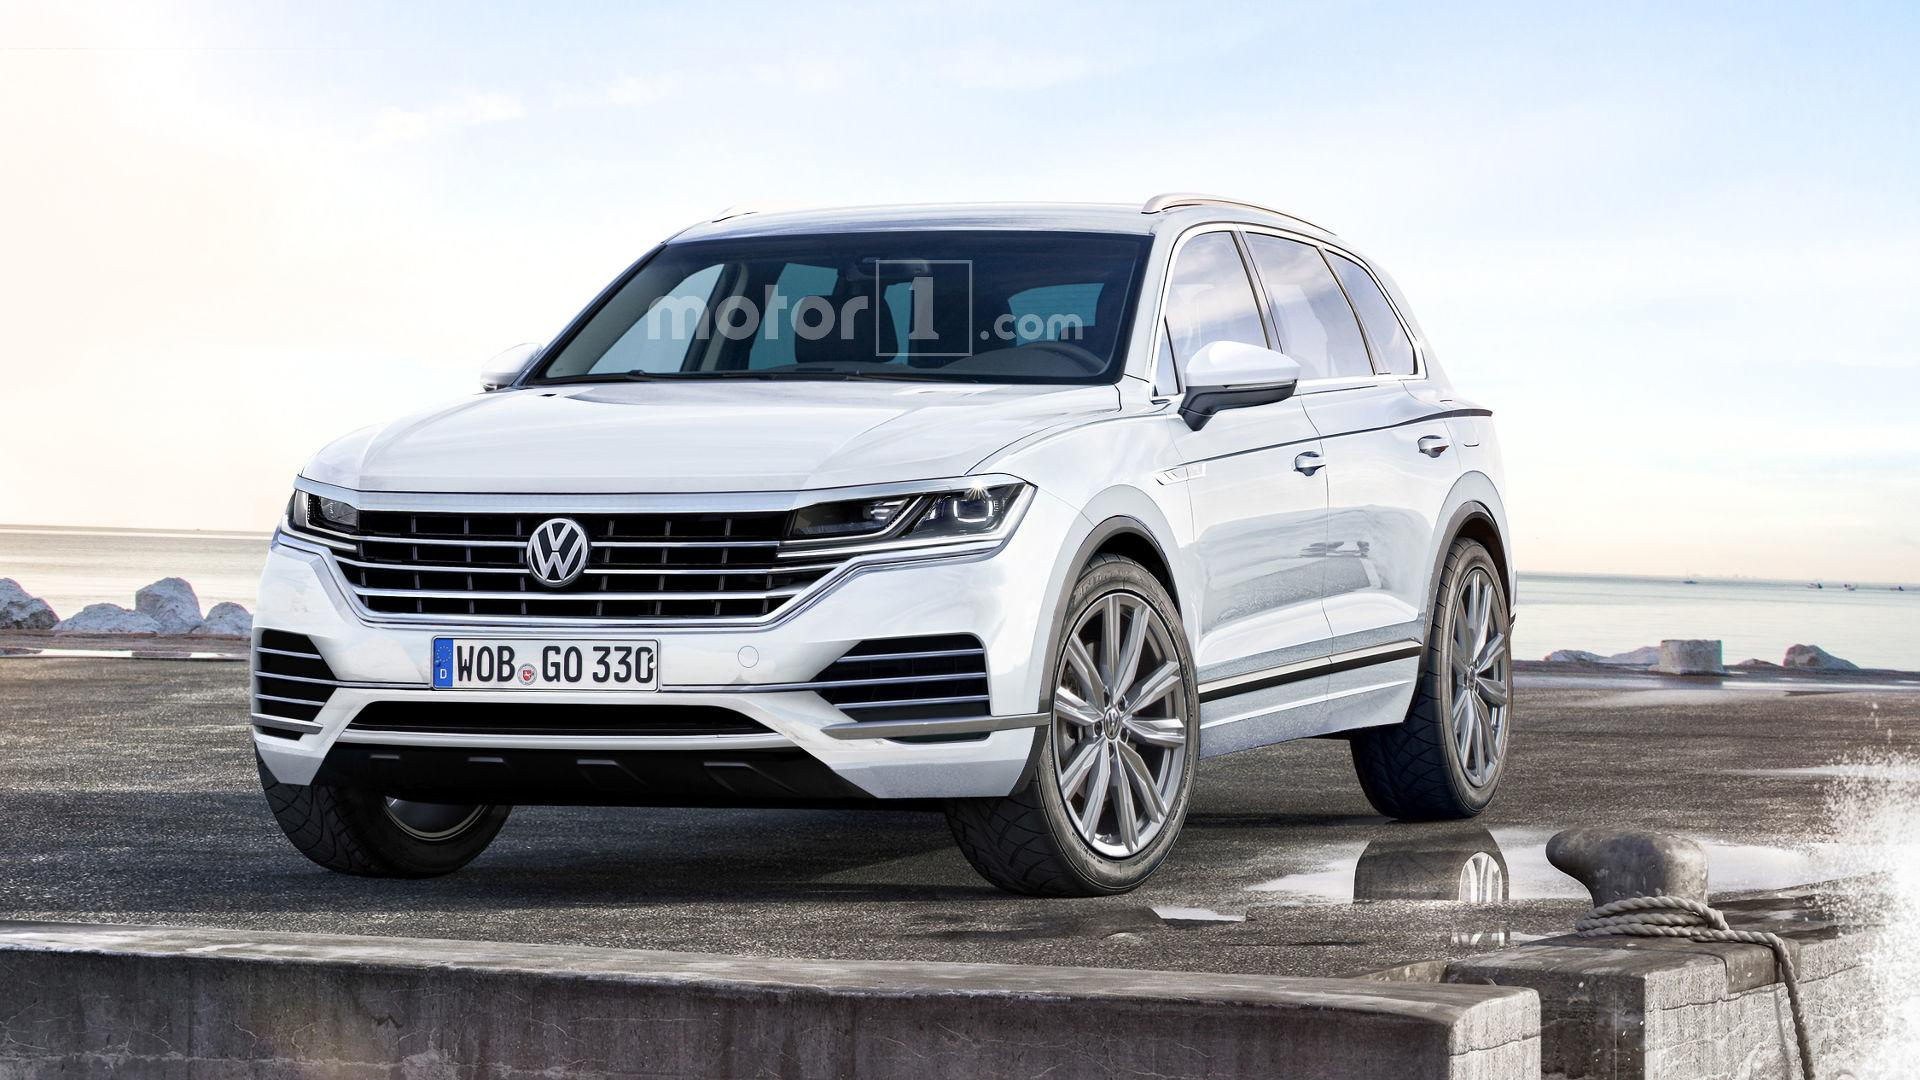 2018 Vw Touareg Rendered With More Upscale Cues